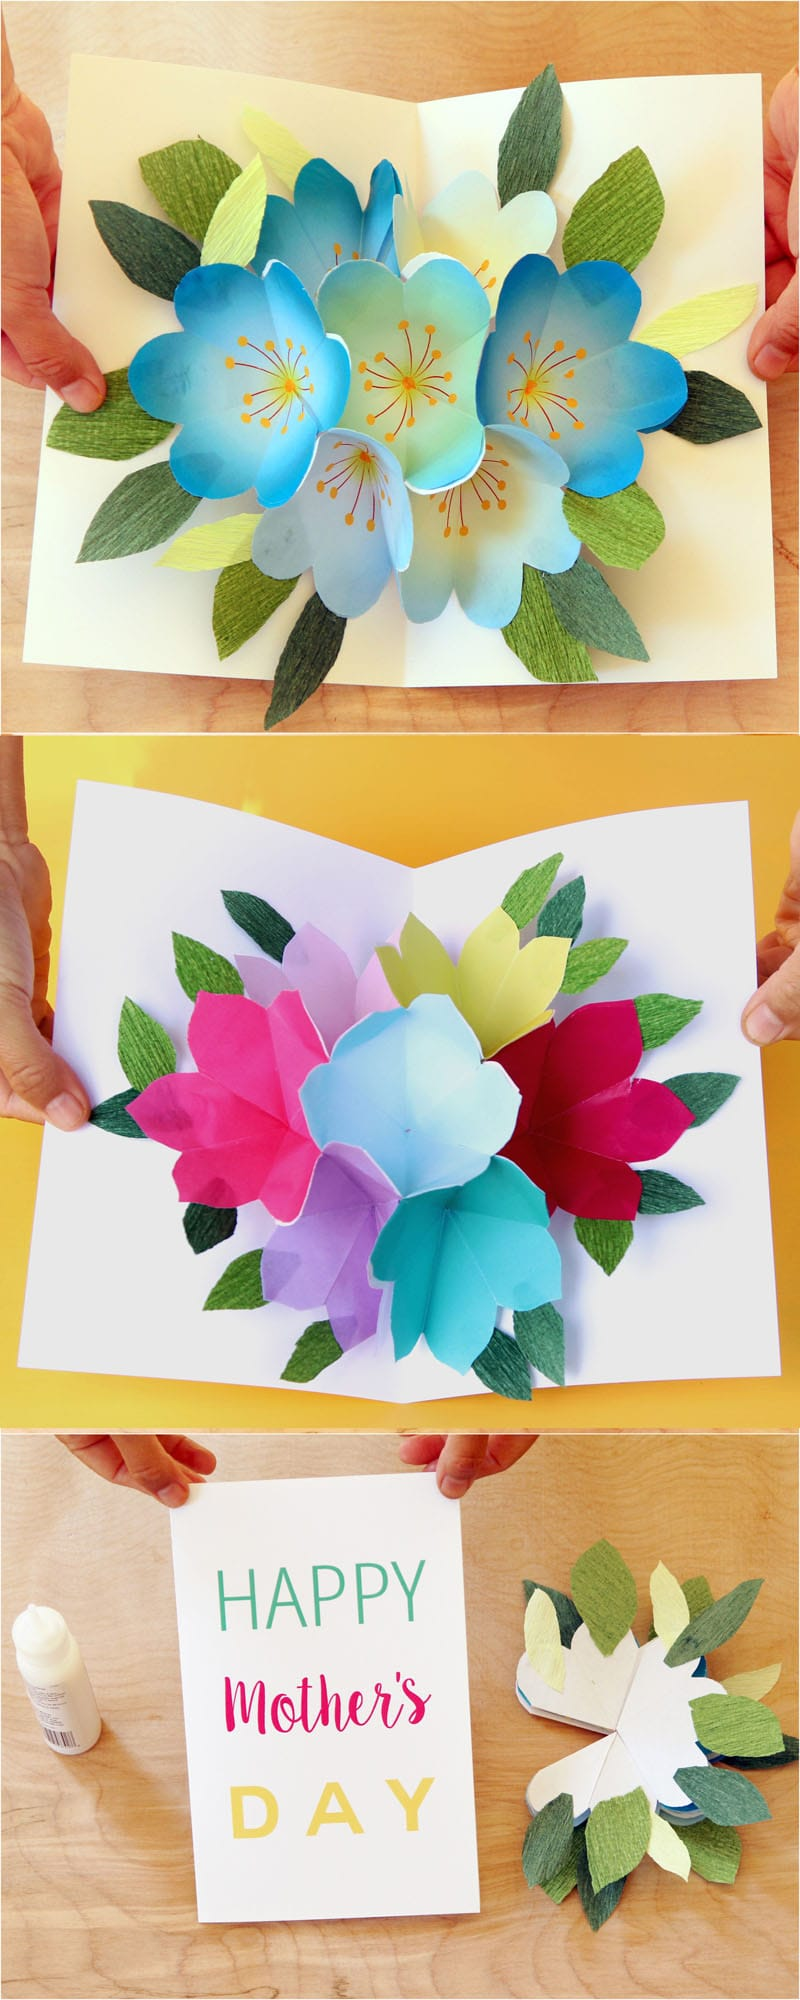 Pop up flowers diy printable mothers day card a piece of rainbow in addition to the free printable mothers day card and the pop up bouquet templates i will also share with you another set of pop up flowers templates with izmirmasajfo